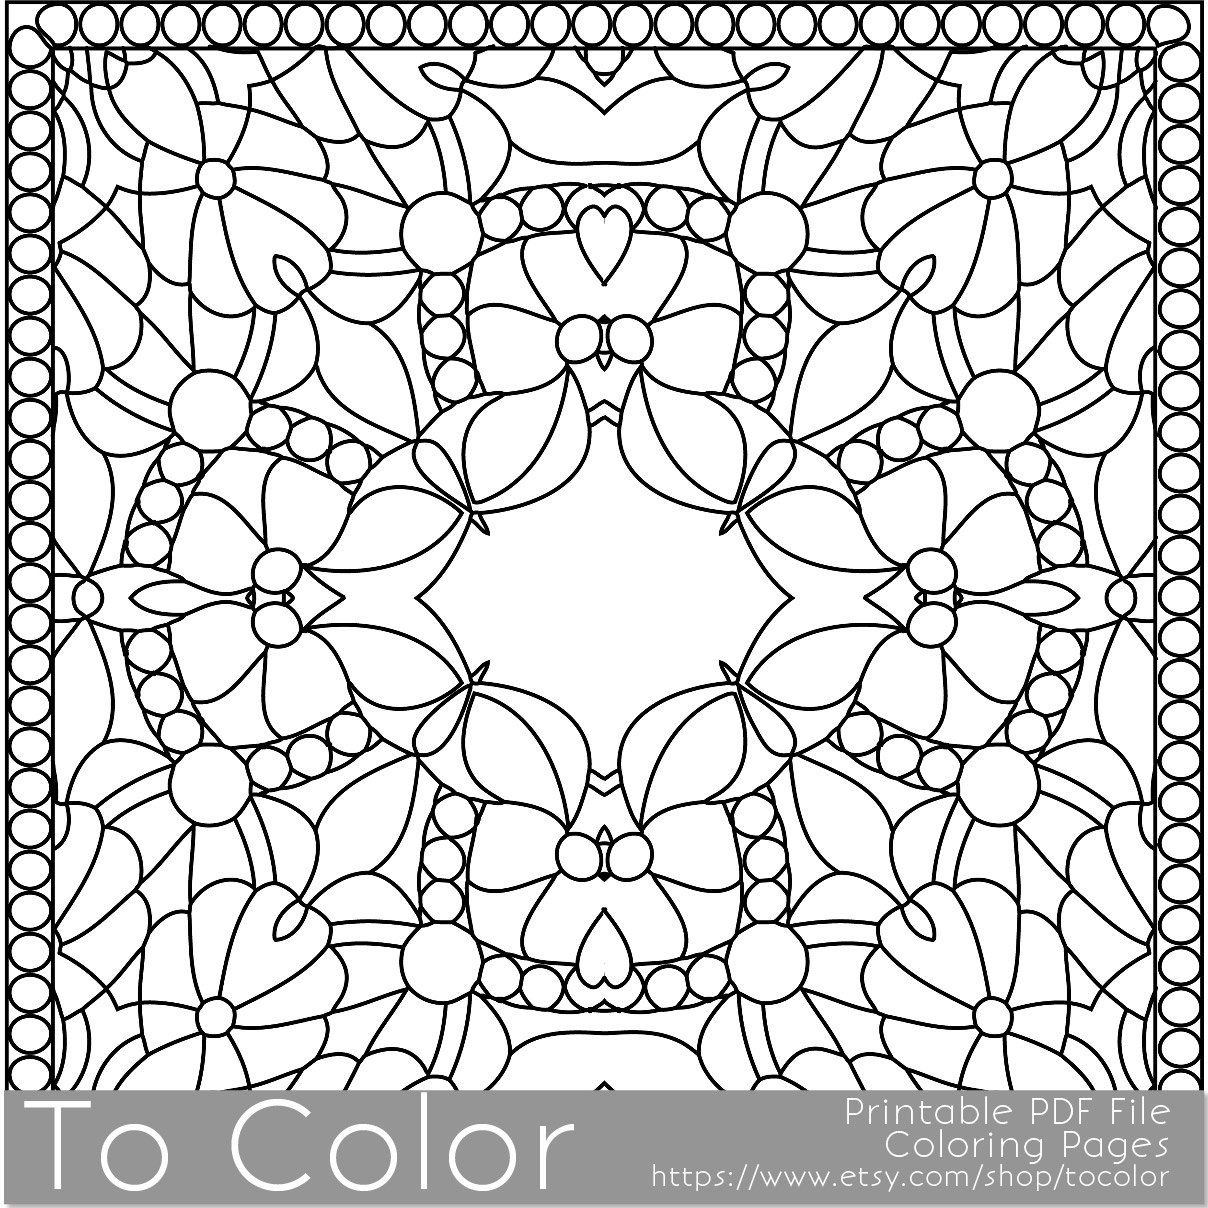 Printable Coloring Pages For Adults Square Coloring